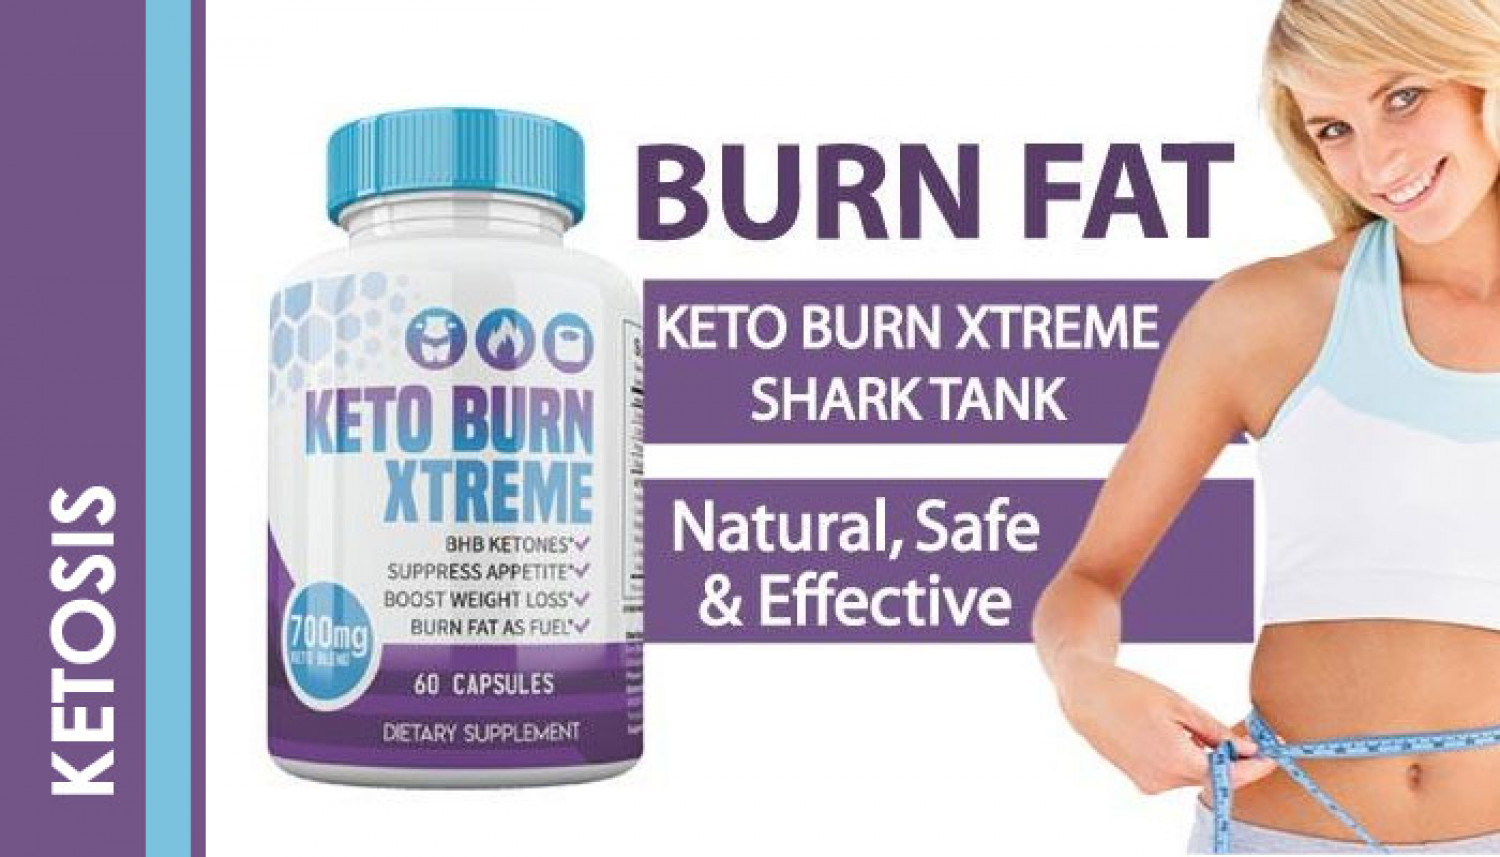 Keto Burn Xtreme for Weight Loss Infographic